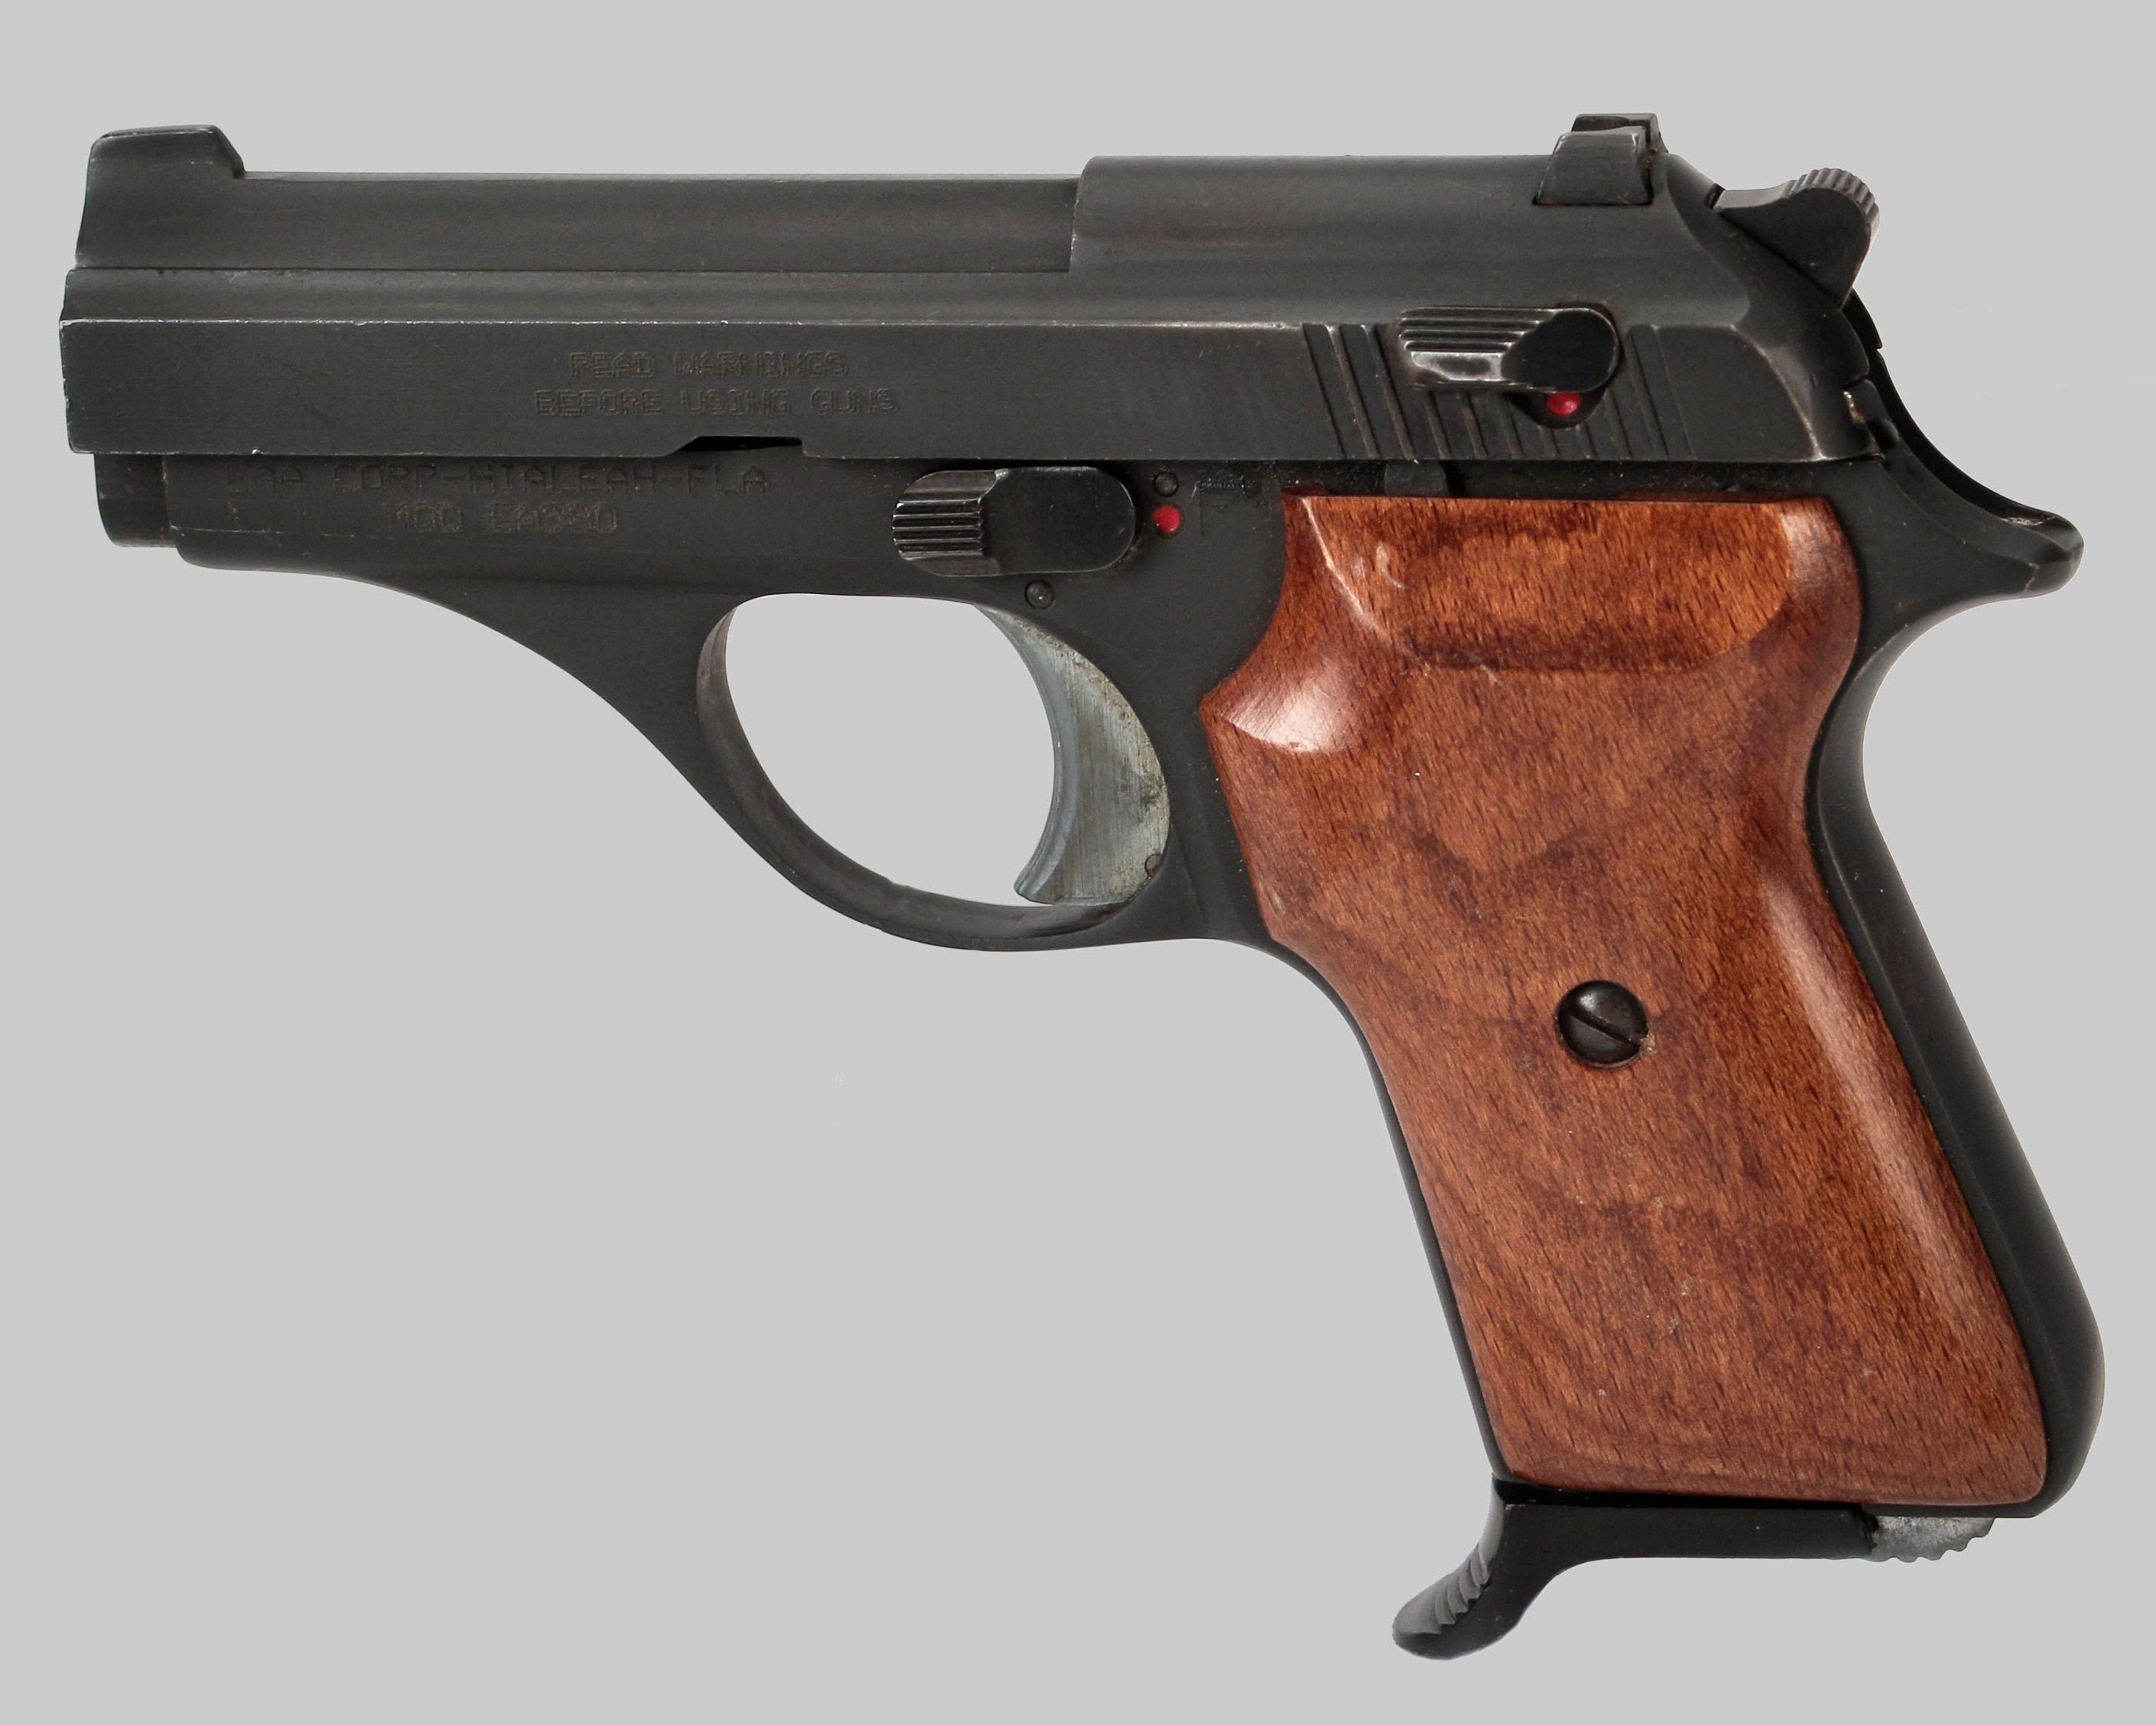 EAA Pistol Model EA380  Guns > Pistols > EAA Pistols > Other